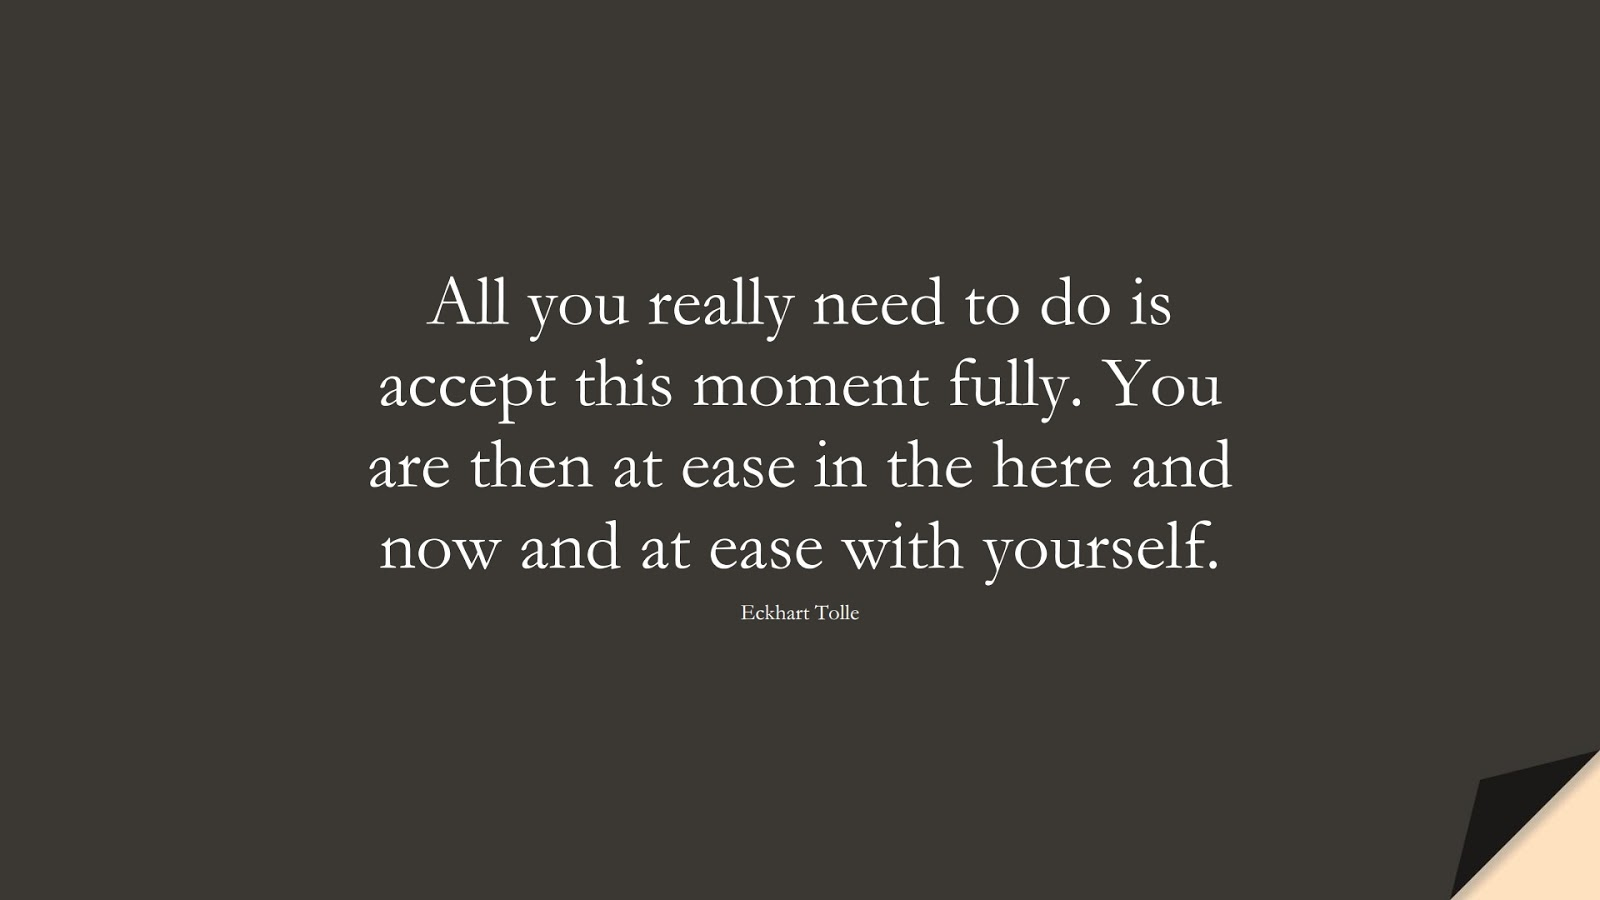 All you really need to do is accept this moment fully. You are then at ease in the here and now and at ease with yourself. (Eckhart Tolle);  #LoveYourselfQuotes